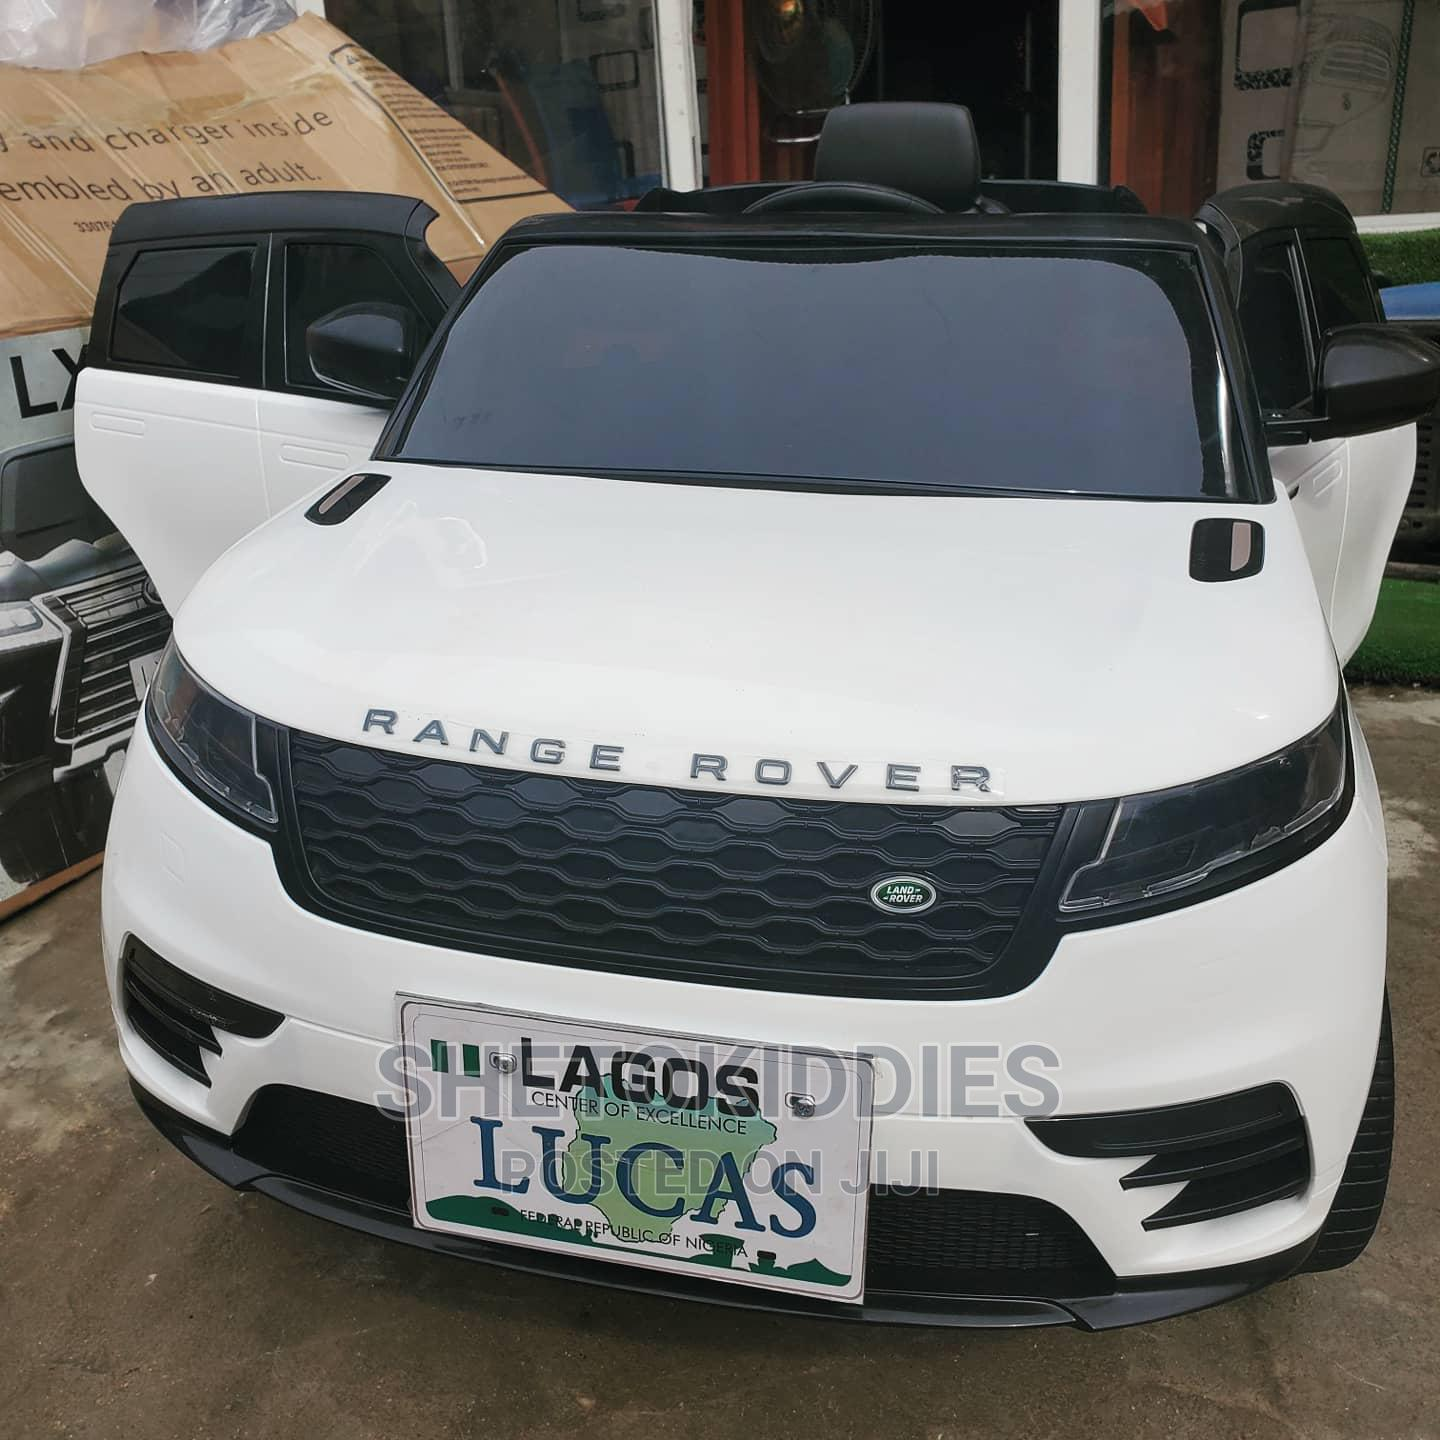 Archive: Range Rover Car Toy